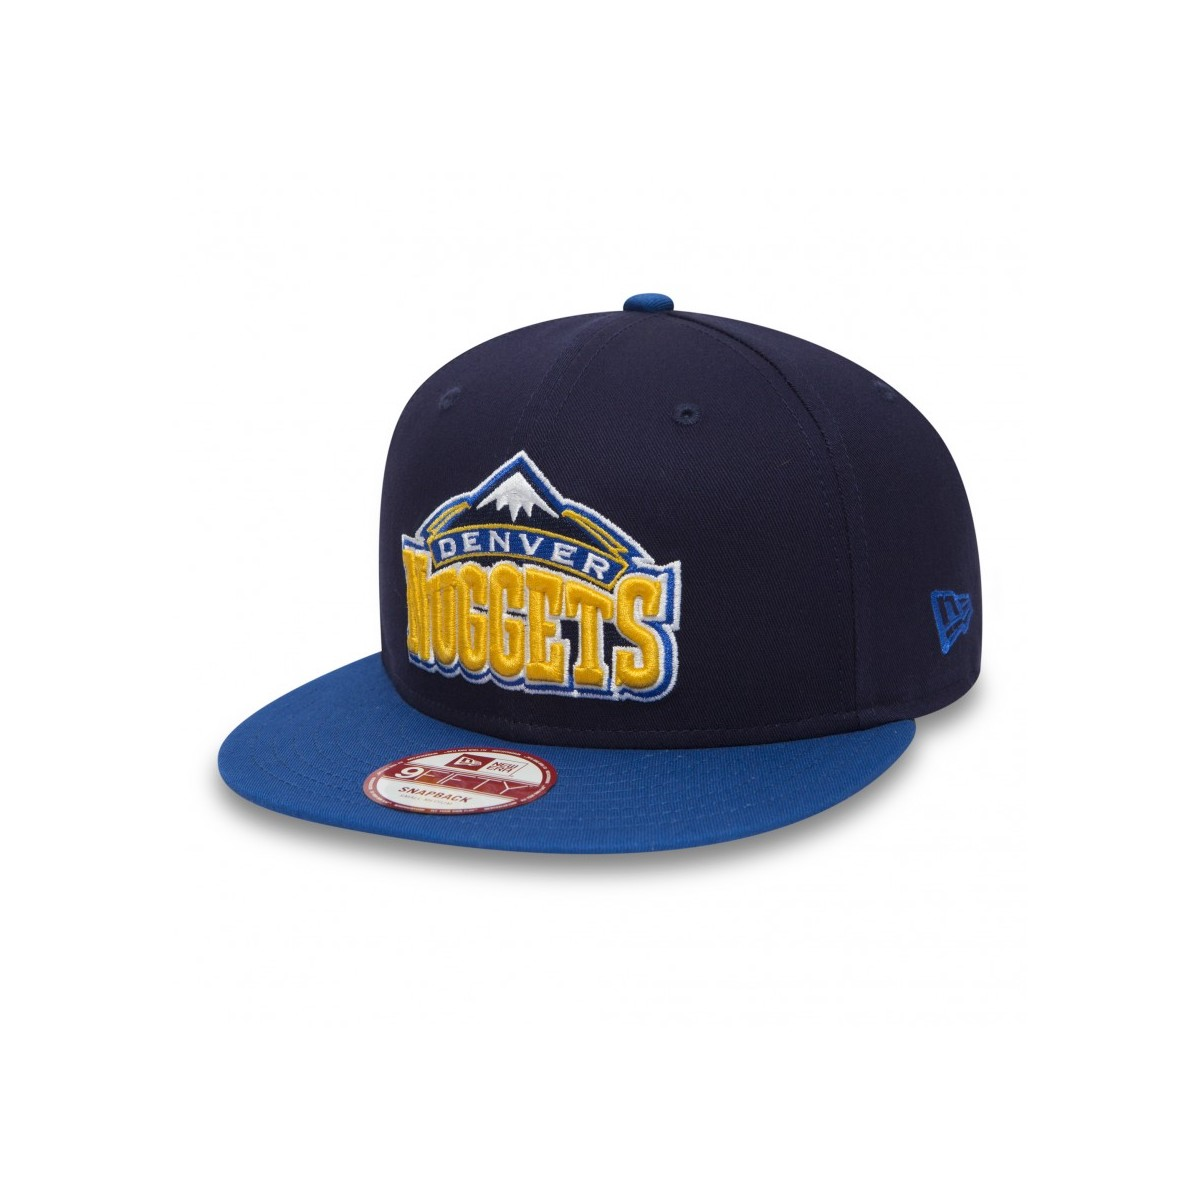 Cappello New Era 9fifty Nba Team Denver Nuggets Basket Nba